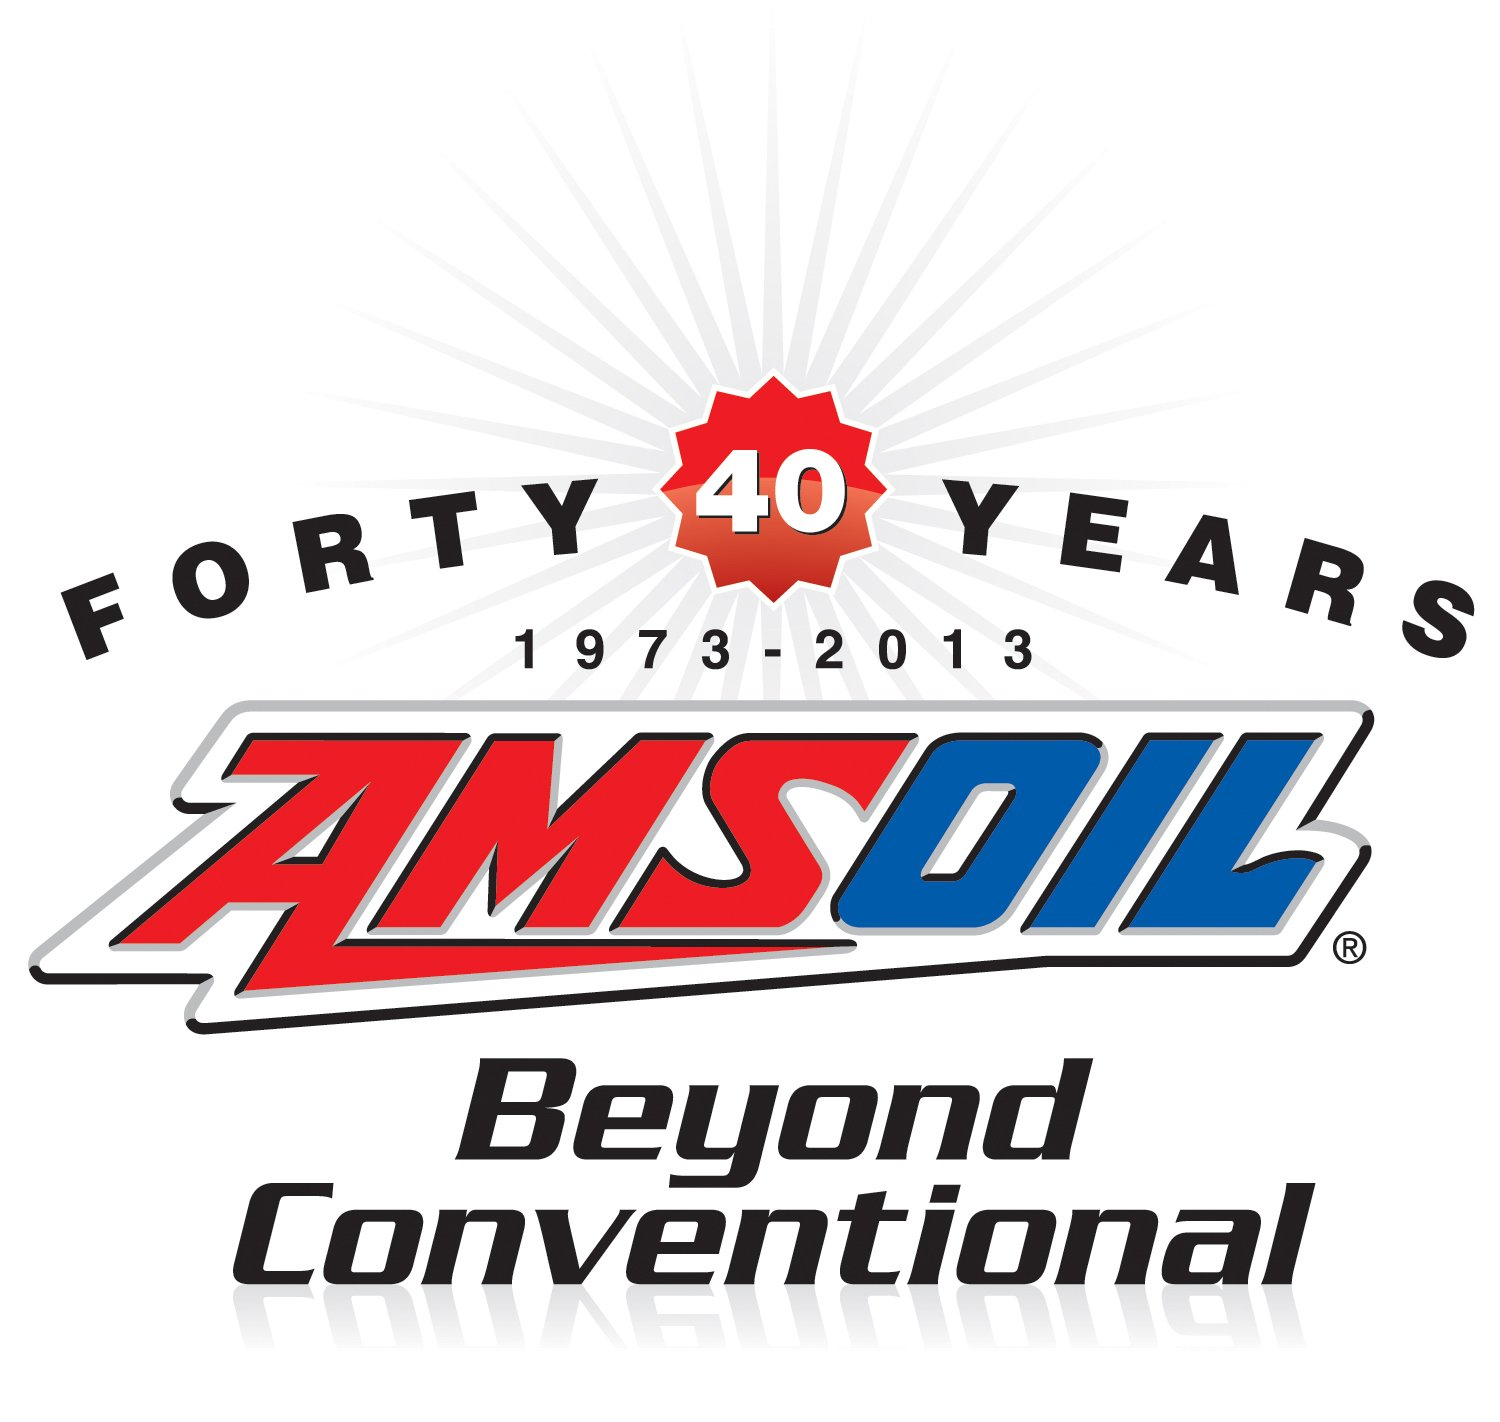 40 Years Beyond Conventional